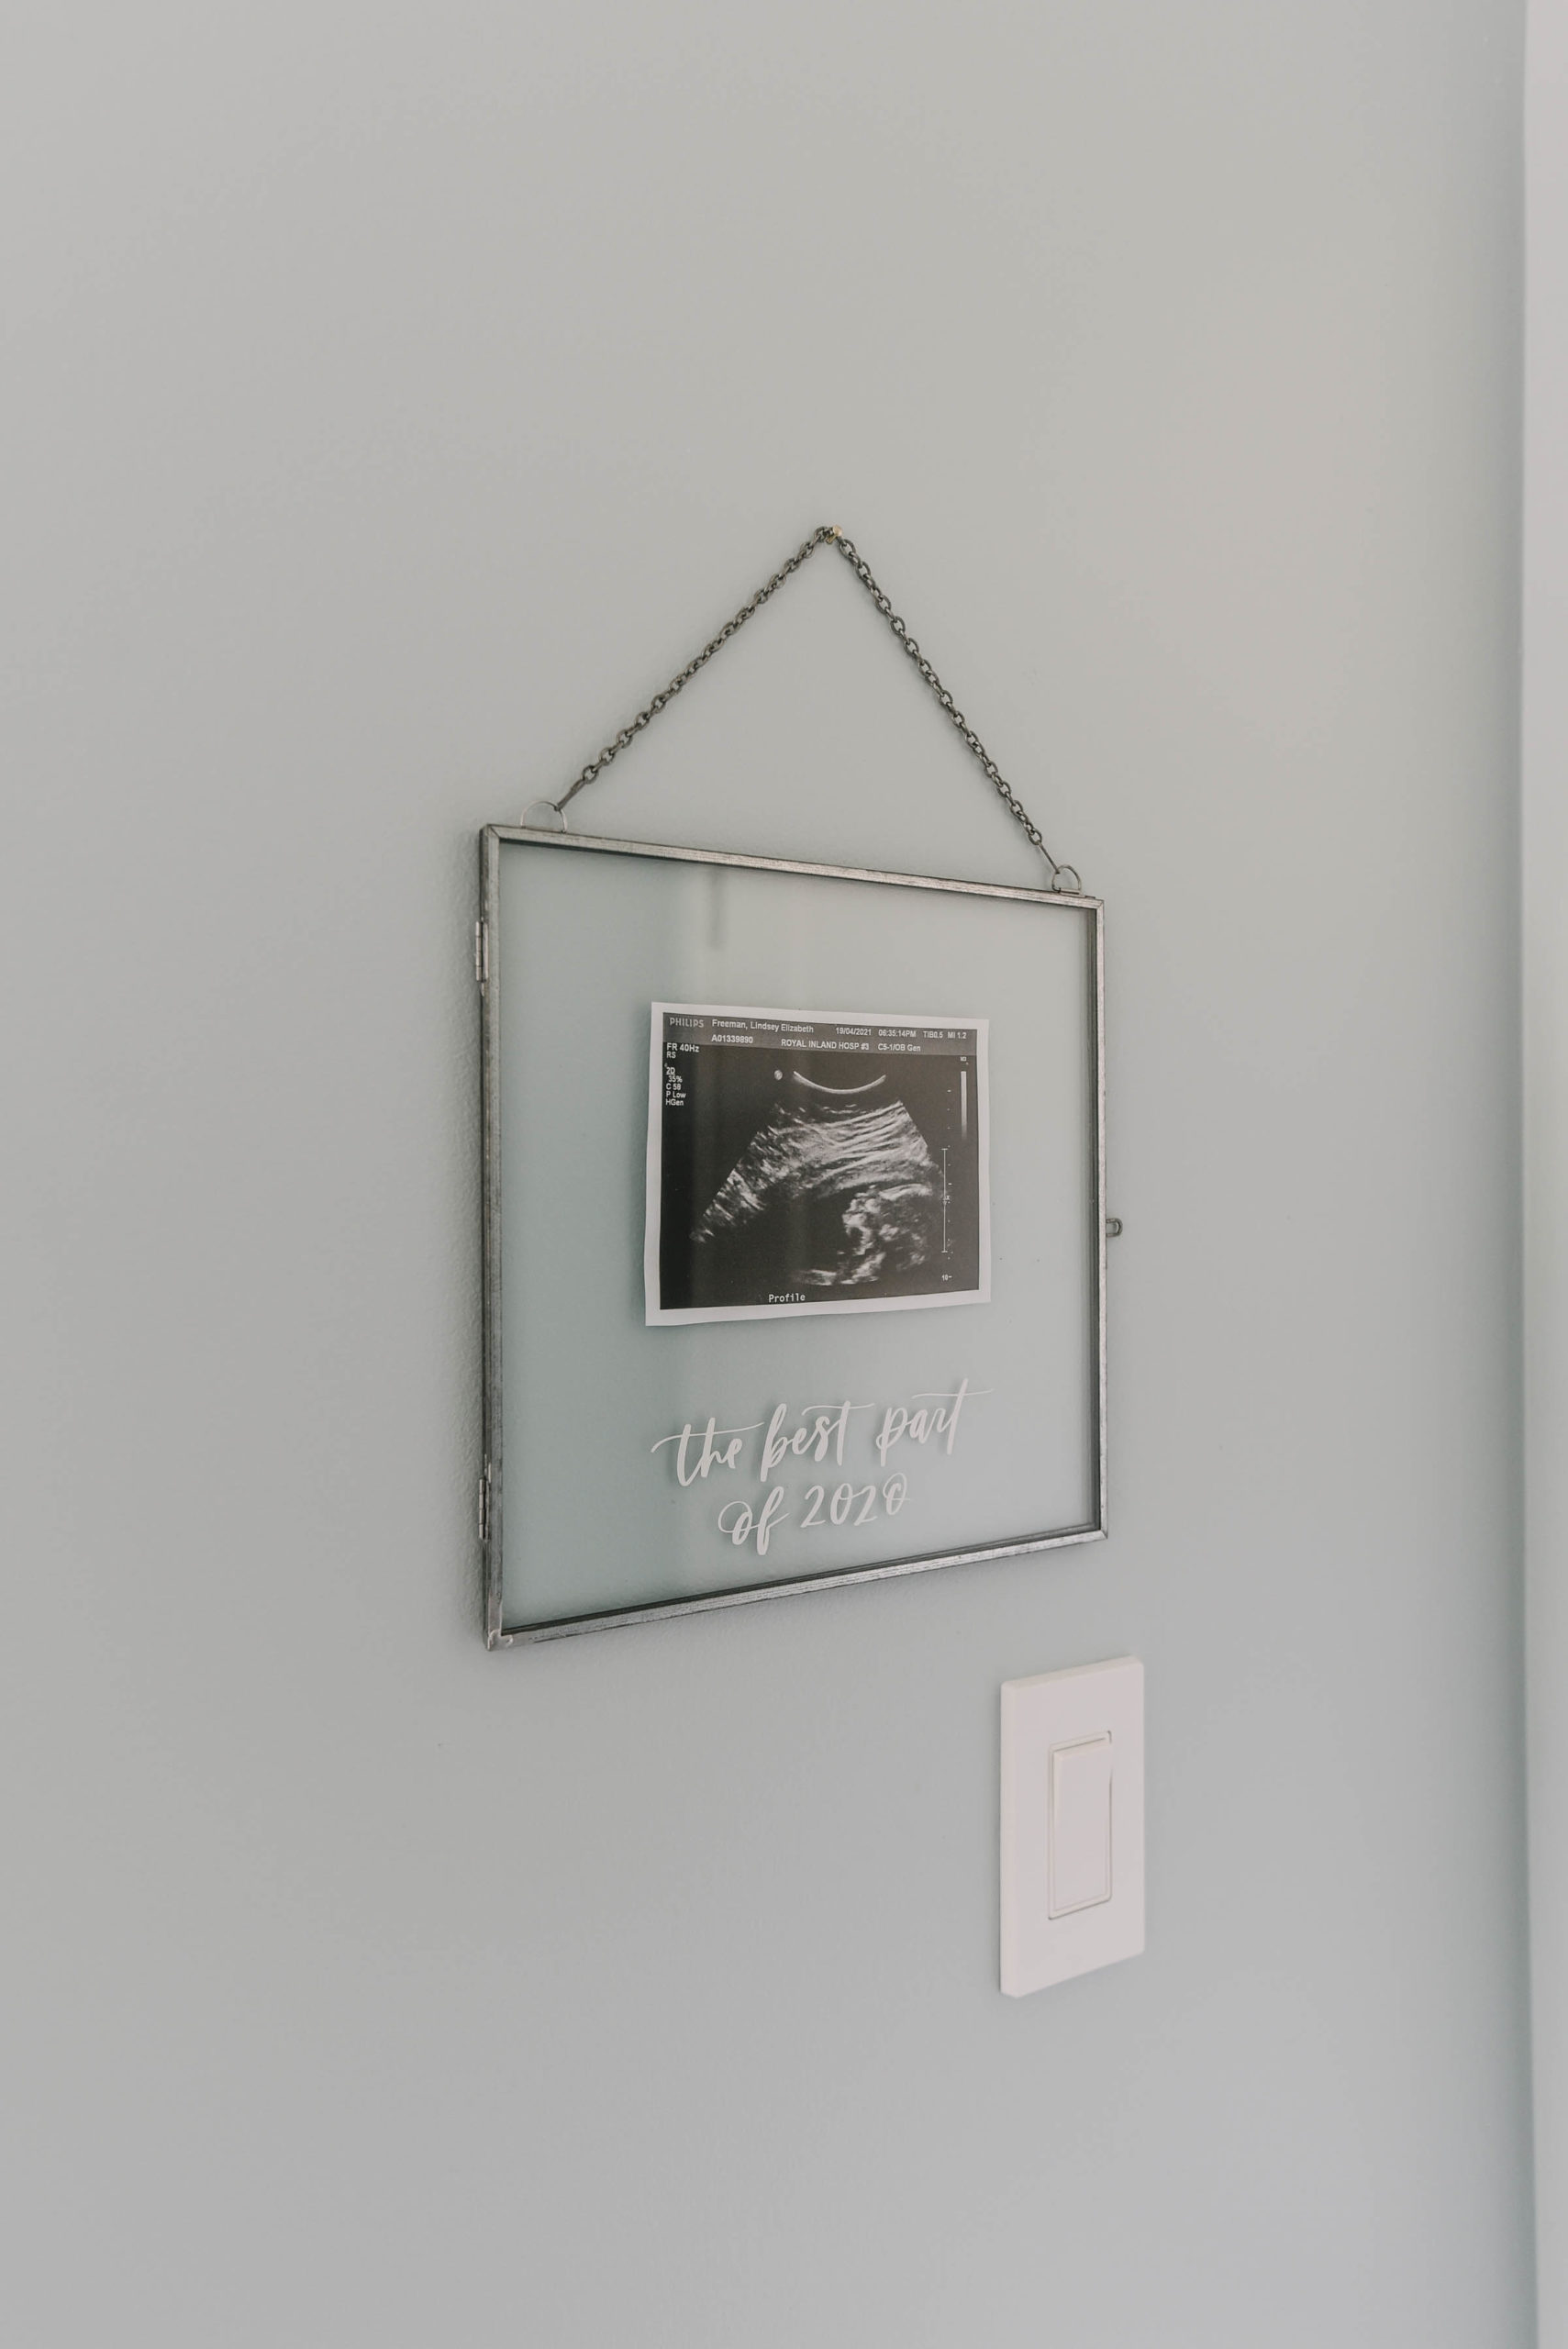 Ultrasound frame with hand lettering